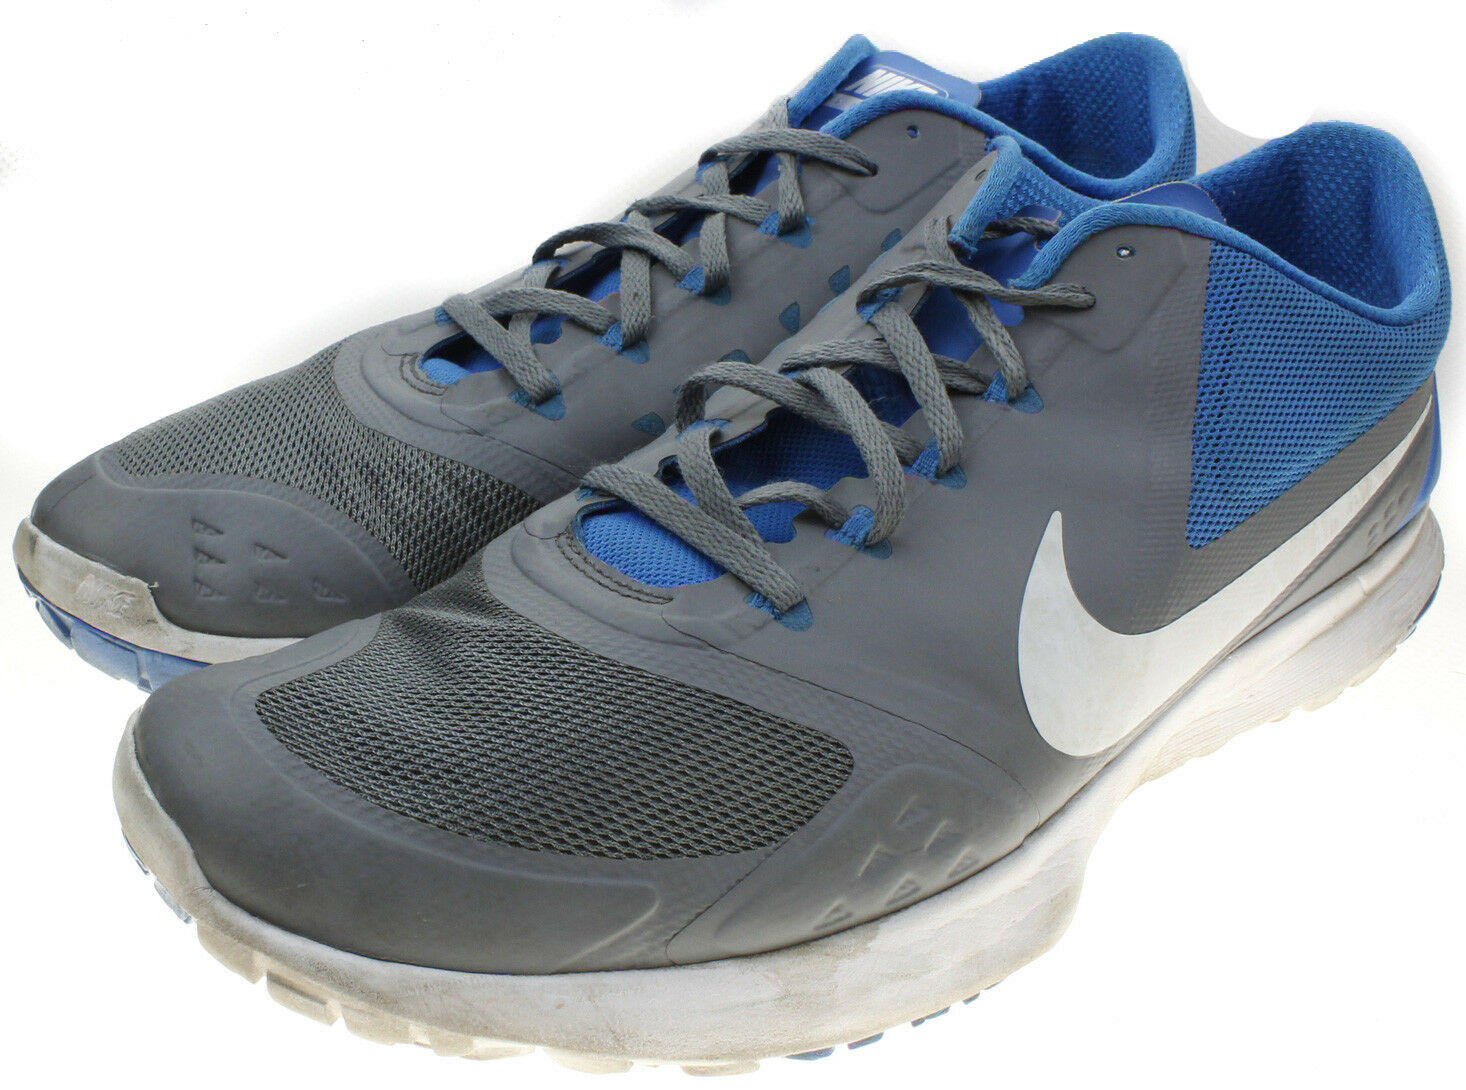 Nike Blue And White Men's Sports Shoes 683141-001 Daily Running Comfortable The most popular shoes for men and women